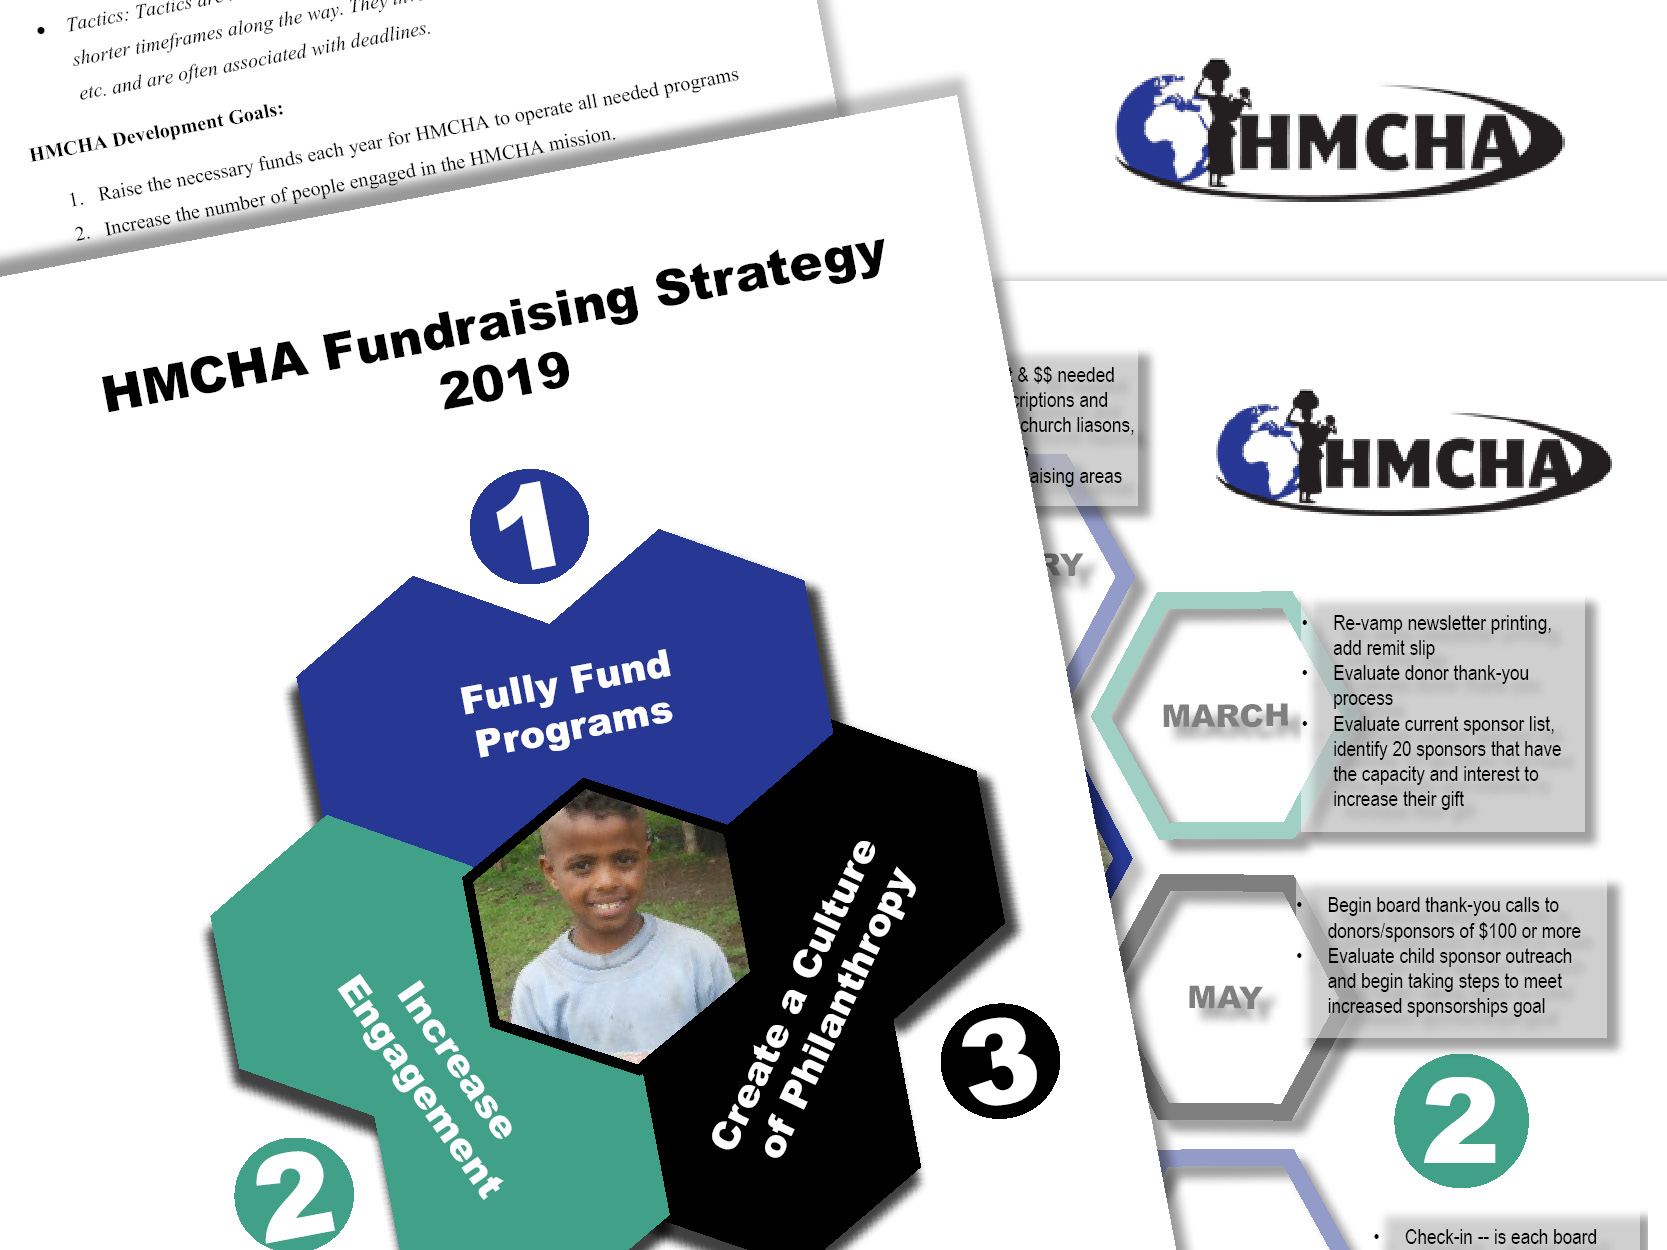 HMCHA - Fundraising strategy + visual tools to guide board engagement.